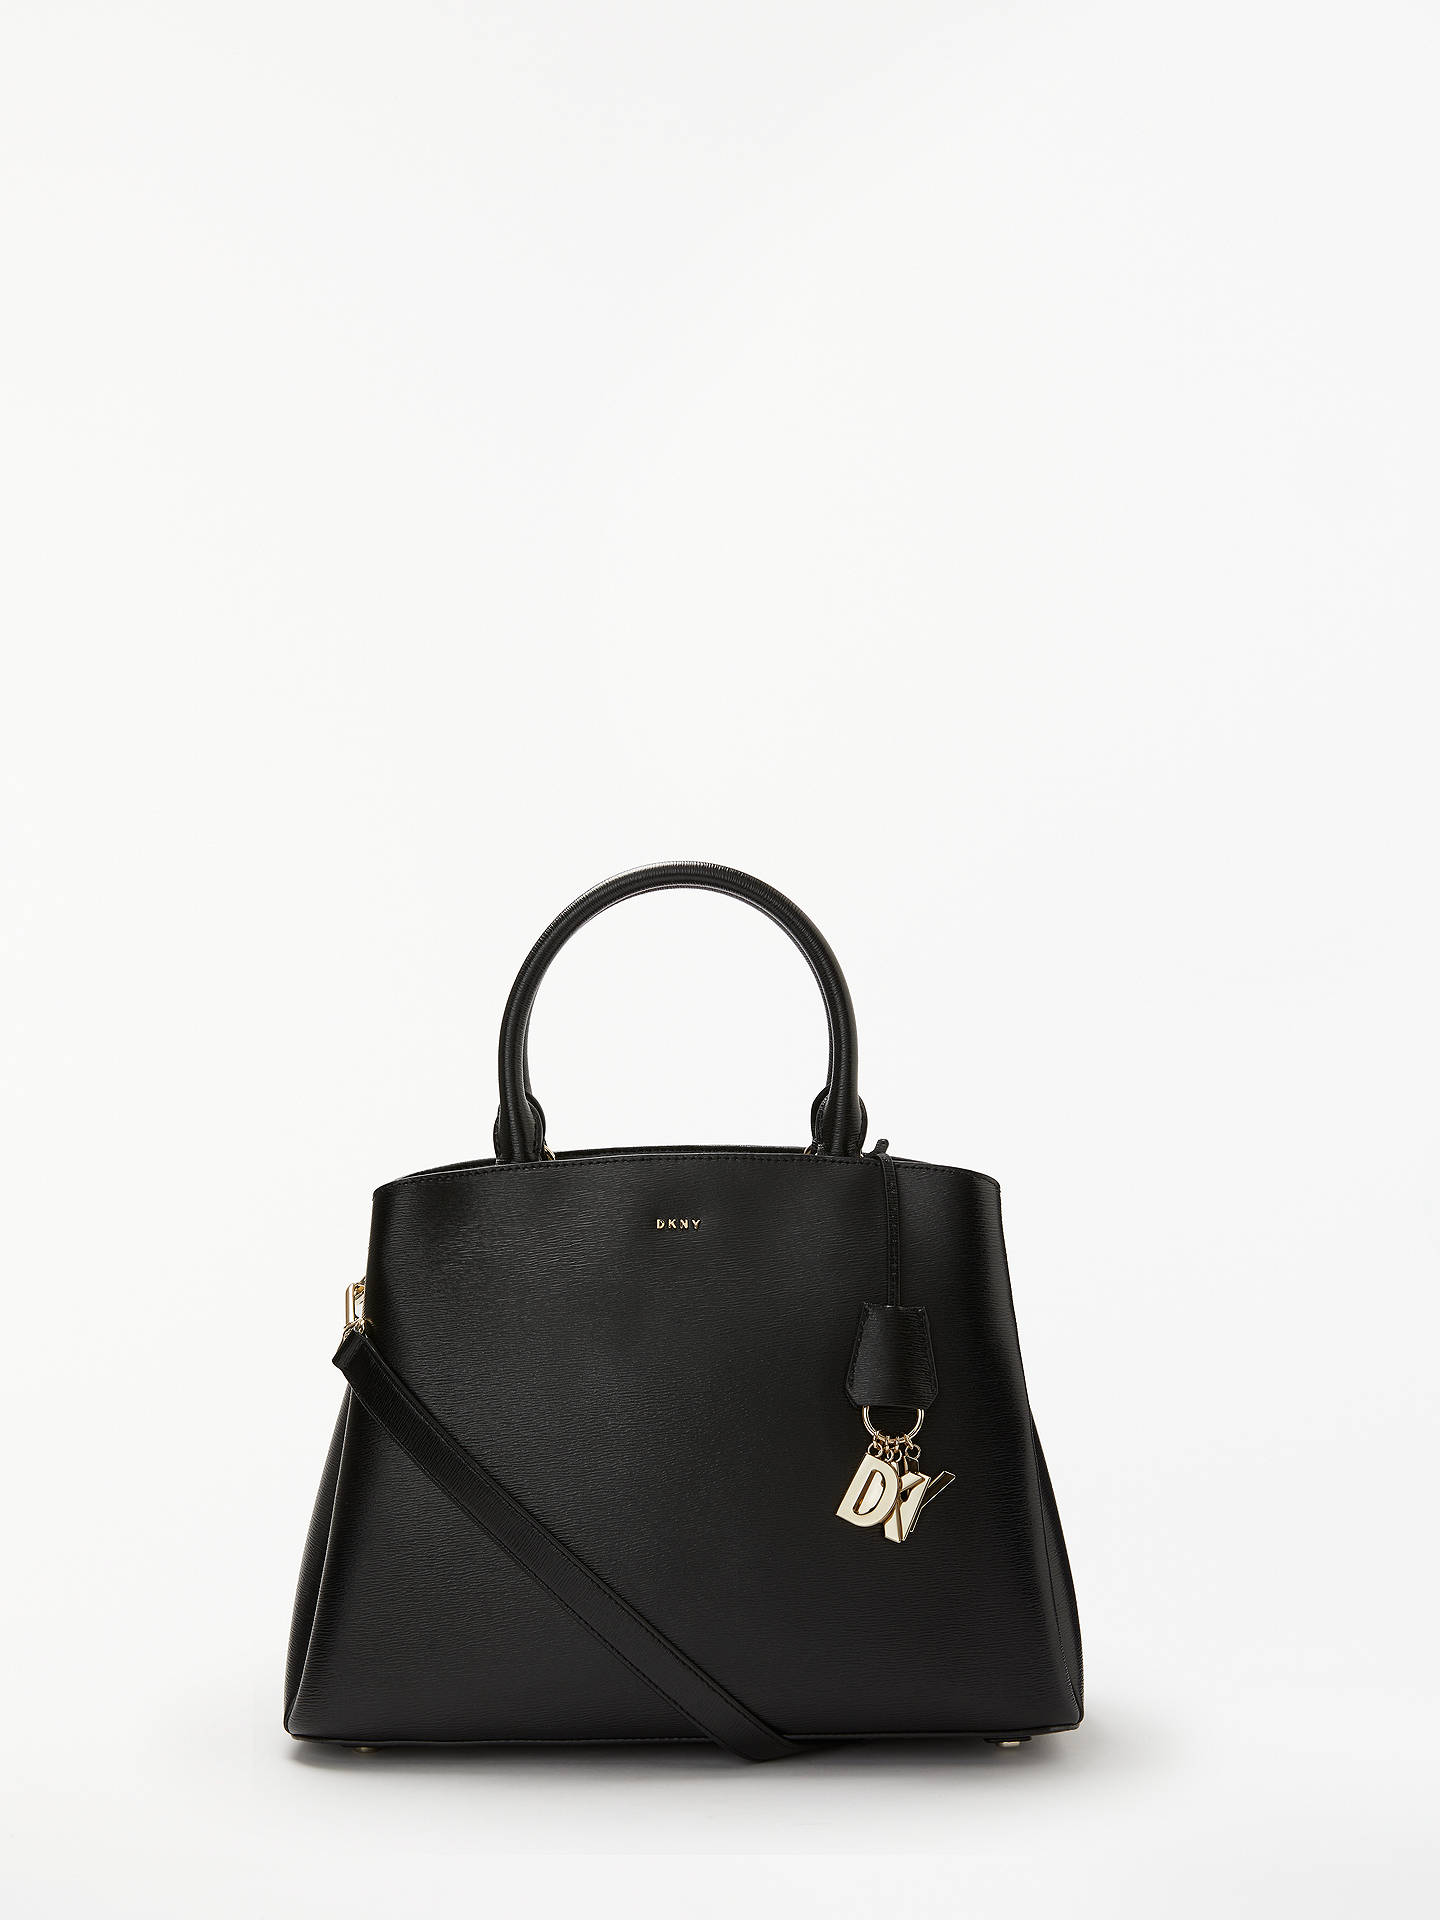 Dkny Paige Large Leather Satchel Bag Black Online At Johnlewis